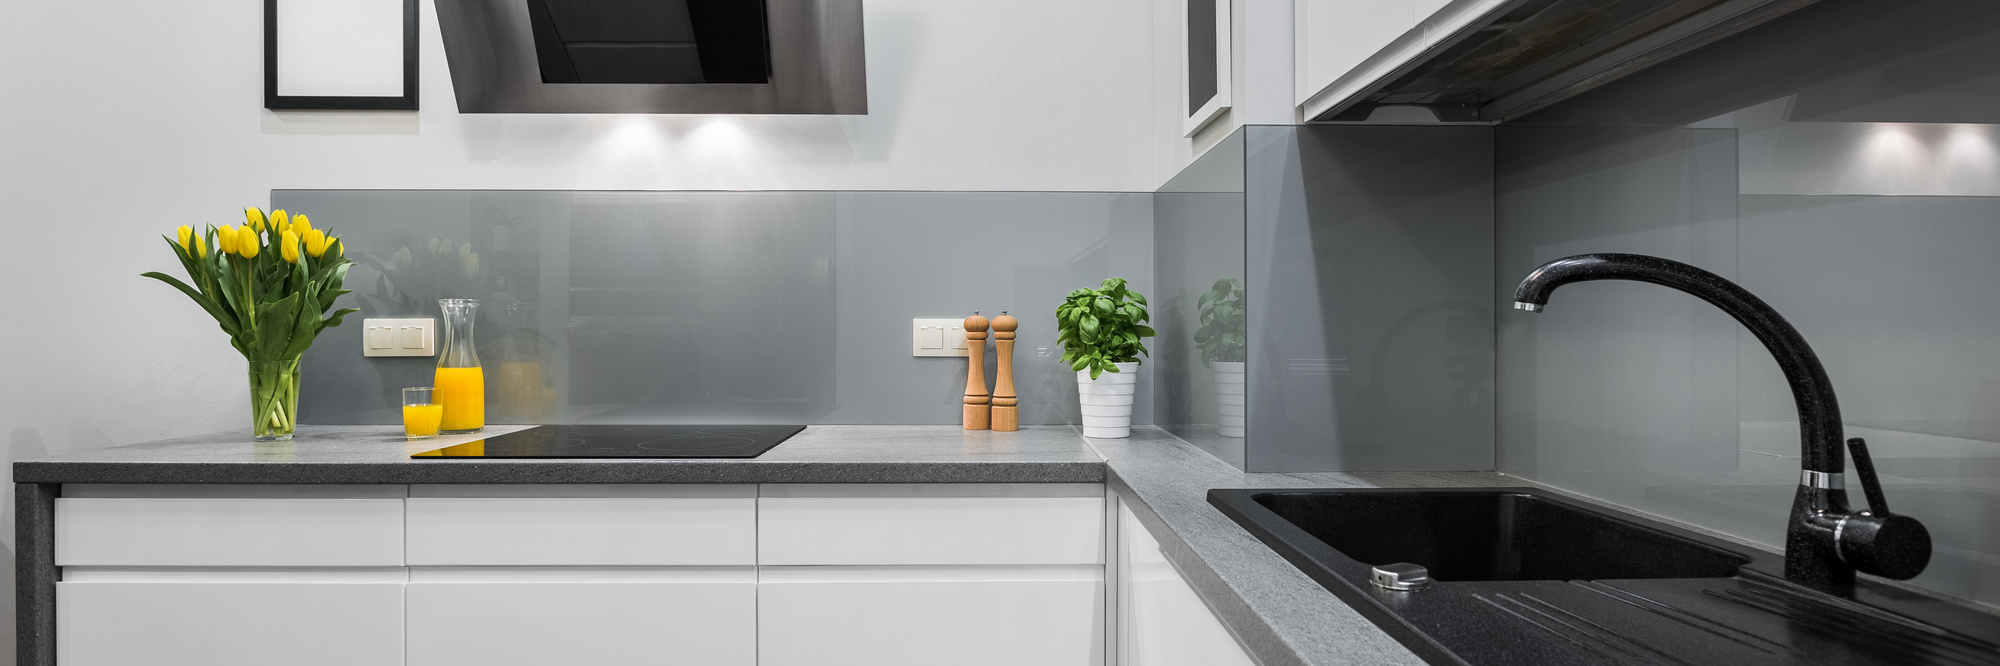 What To Look For When Hiring A Countertop Fabricators